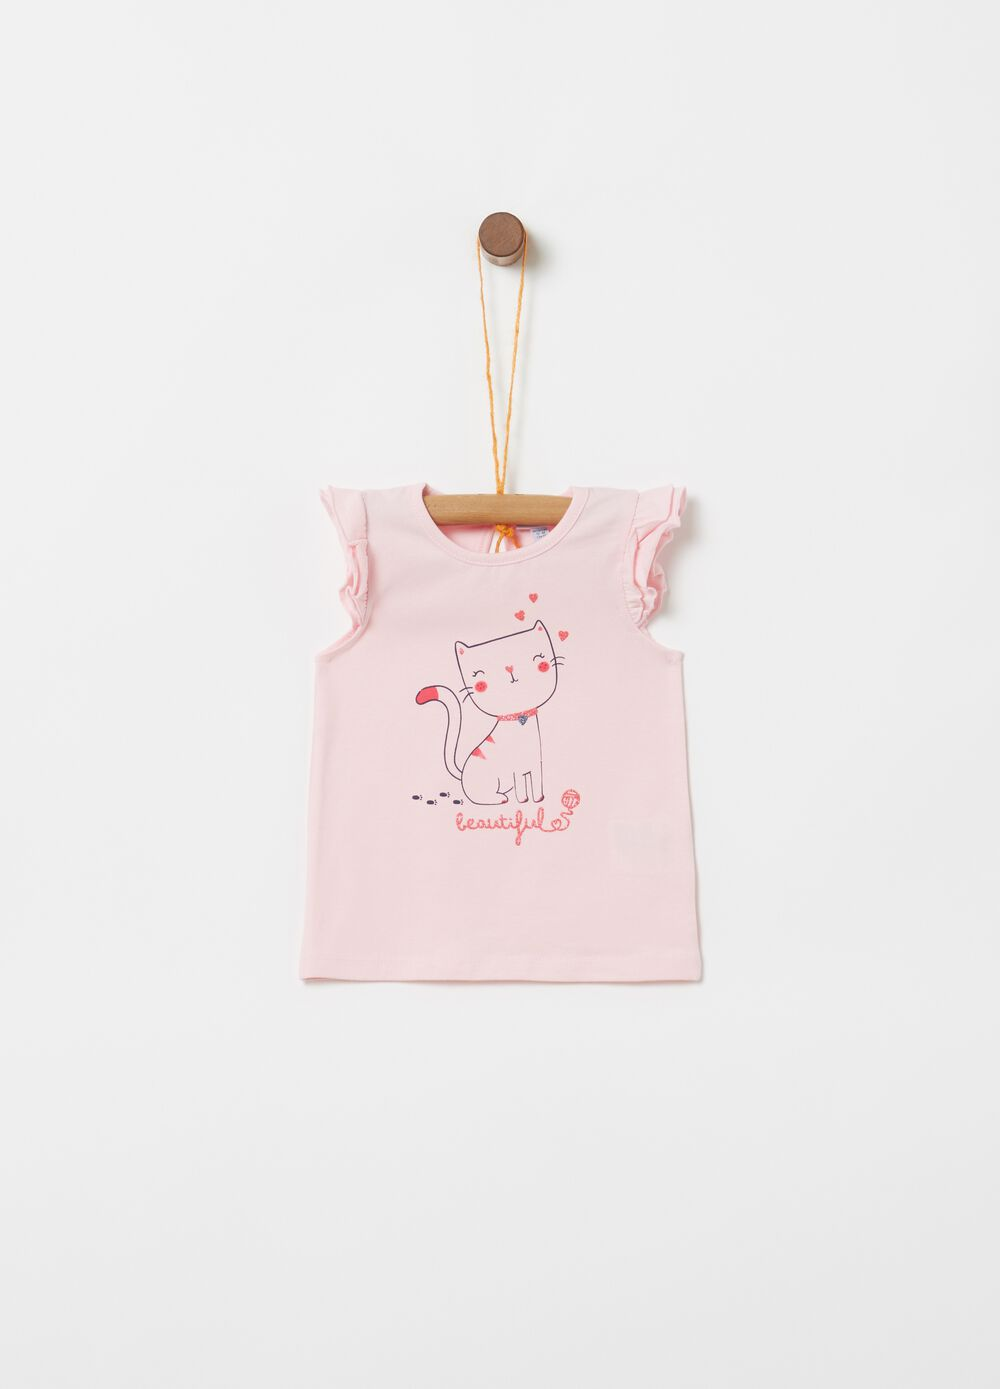 Ruched tank top with glittery kitten print